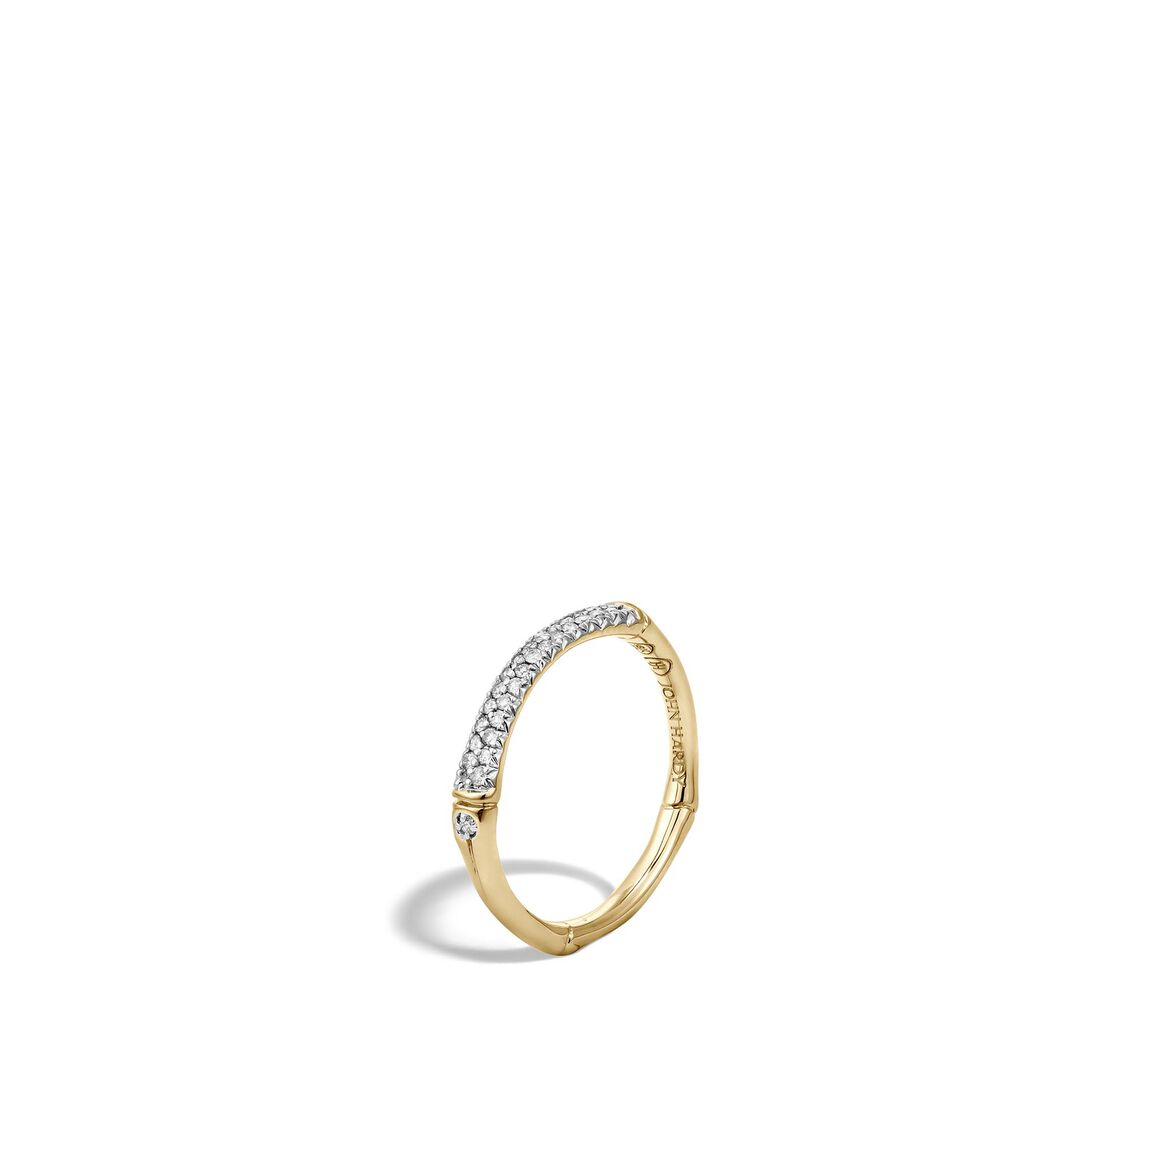 Bamboo 2.5MM Band Ring in 18K Gold with Diamonds